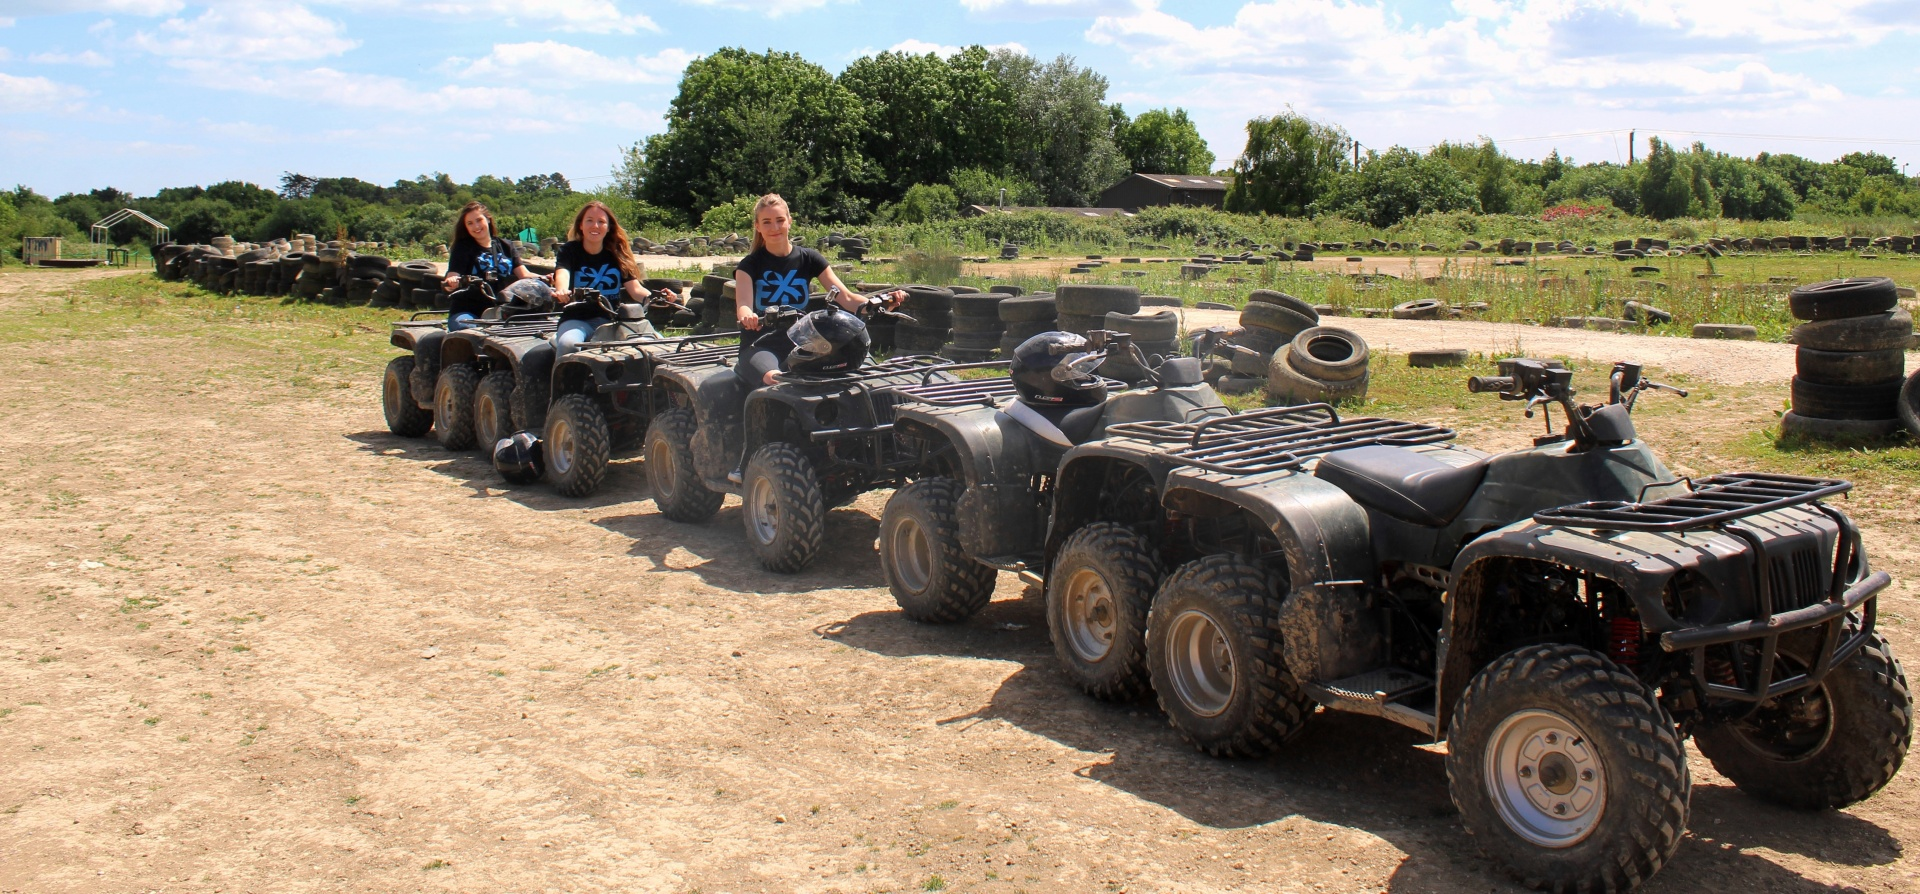 Quad Biking East Sussex 60 Minutes-1